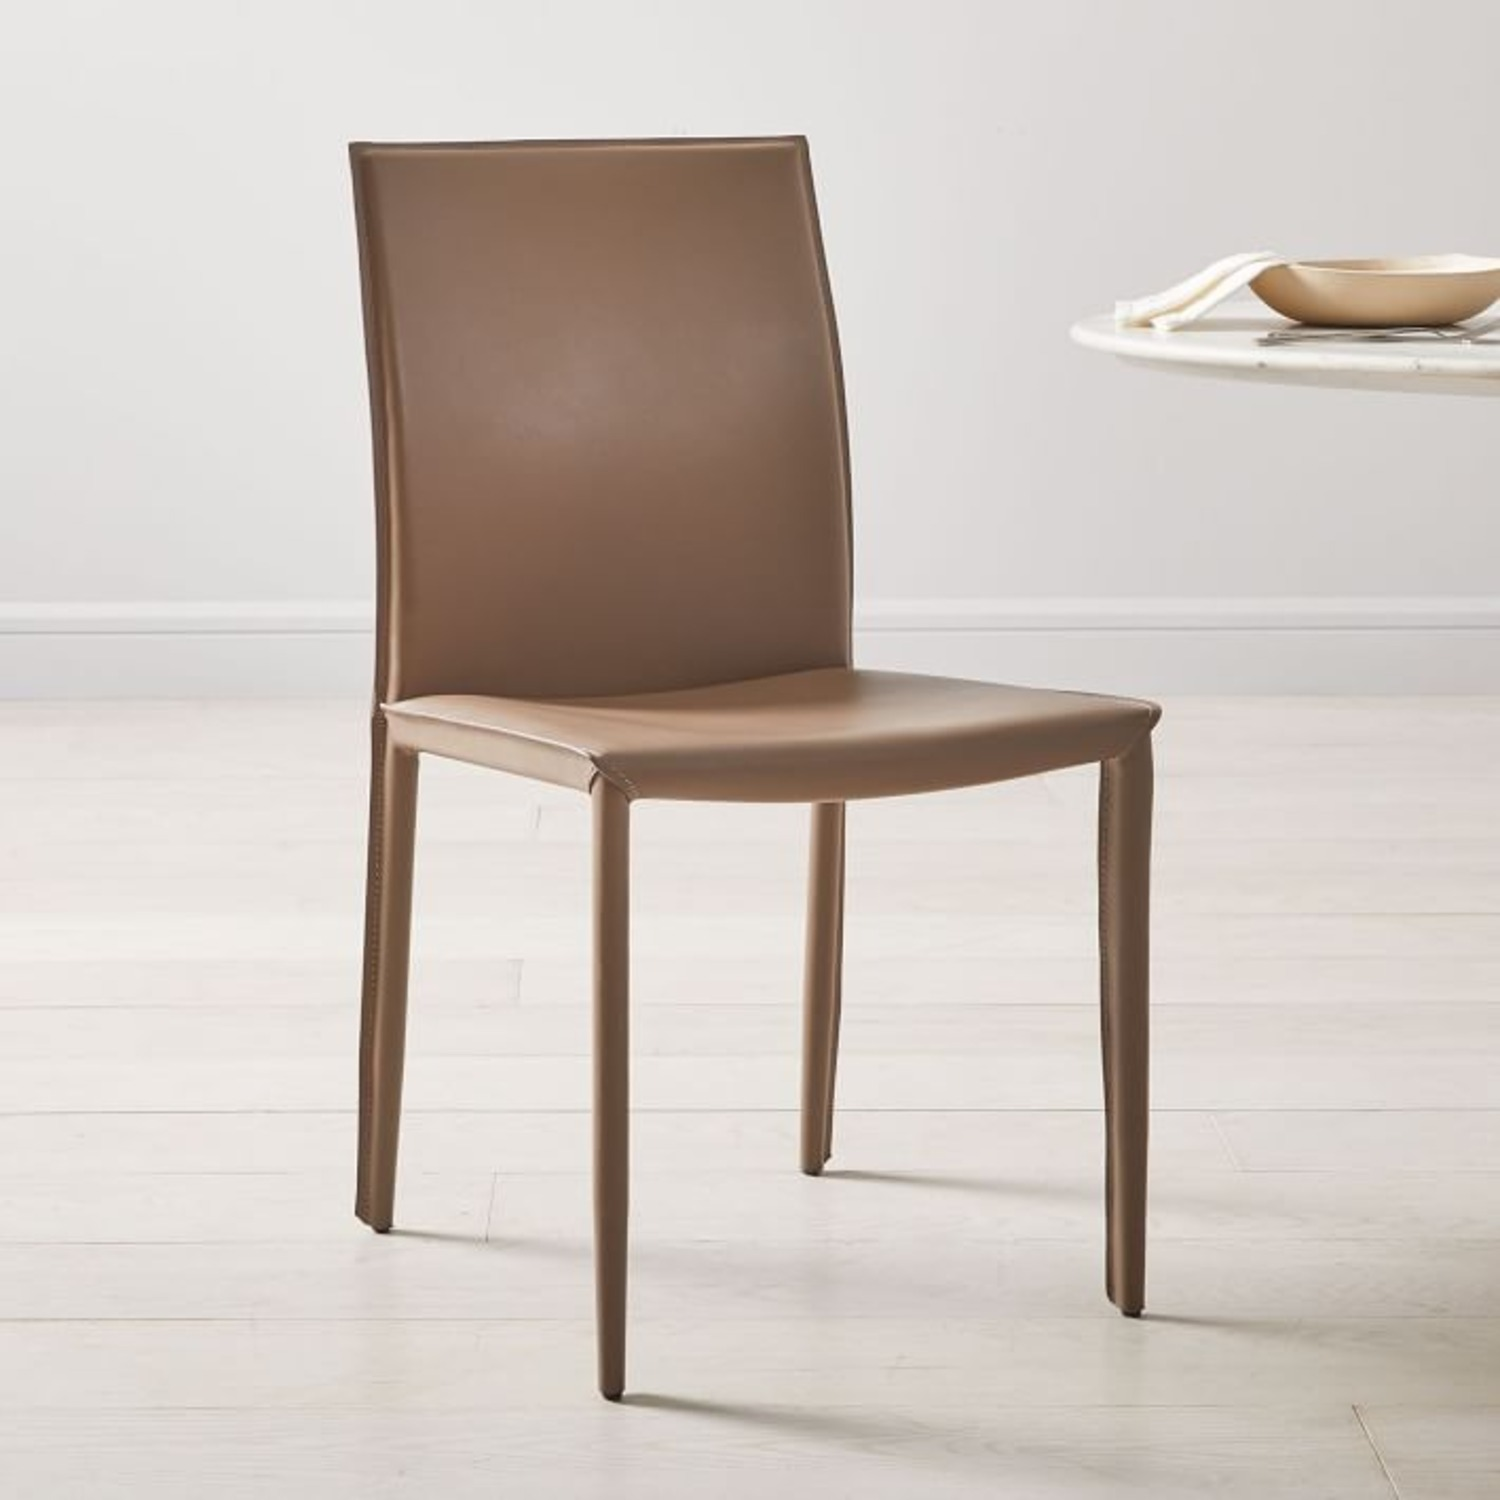 West Elm Lex Dining Chair - image-3